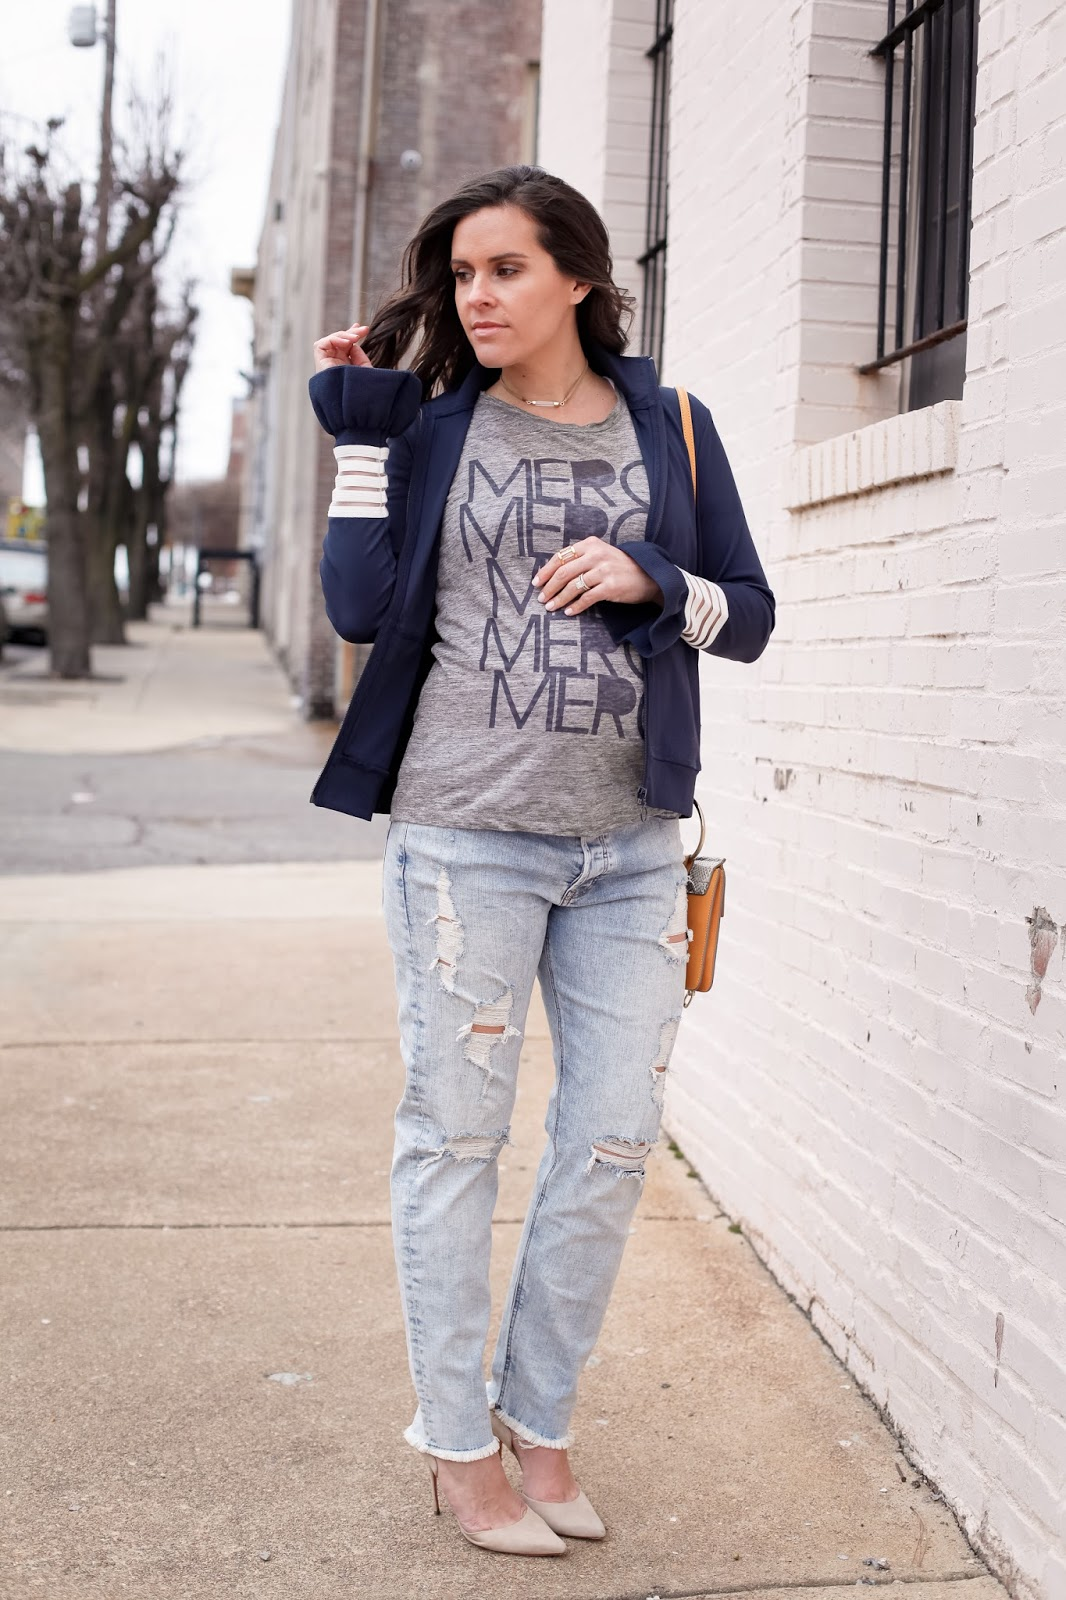 Maternity style with a track jacket.